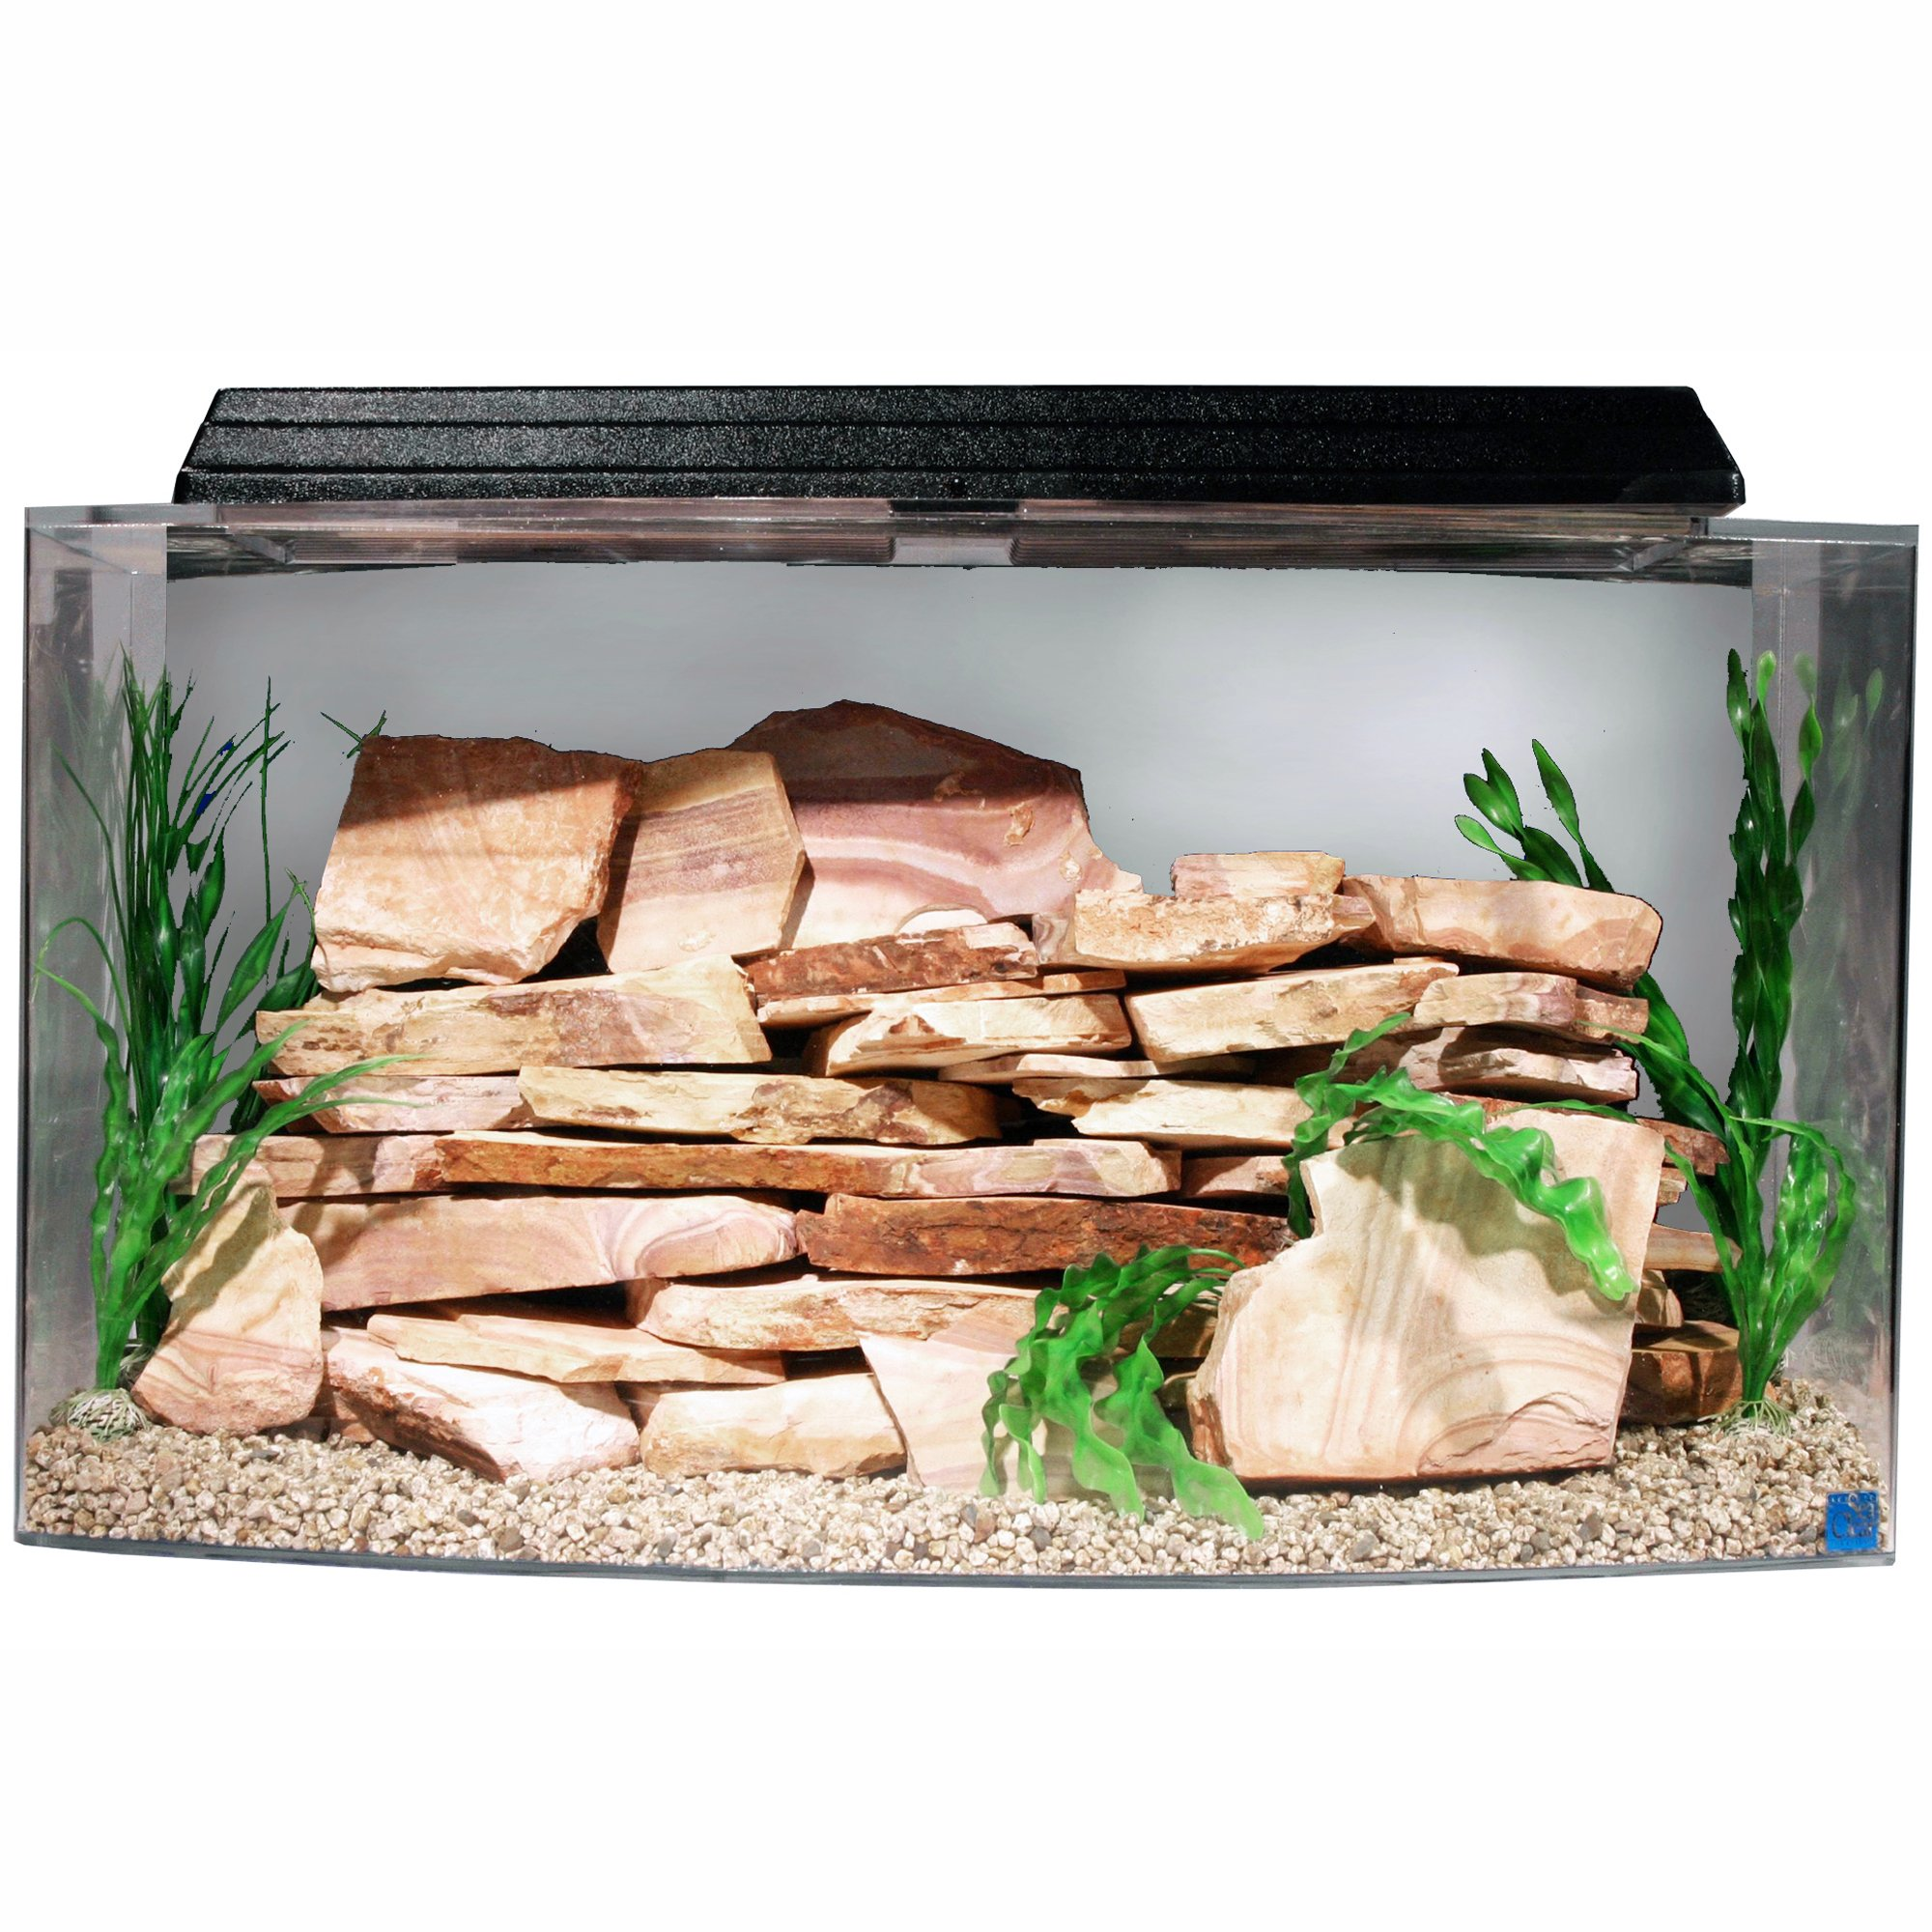 Seaclear bowfront 46 gallon aquarium combos in clear petco for Petco fish tank sale